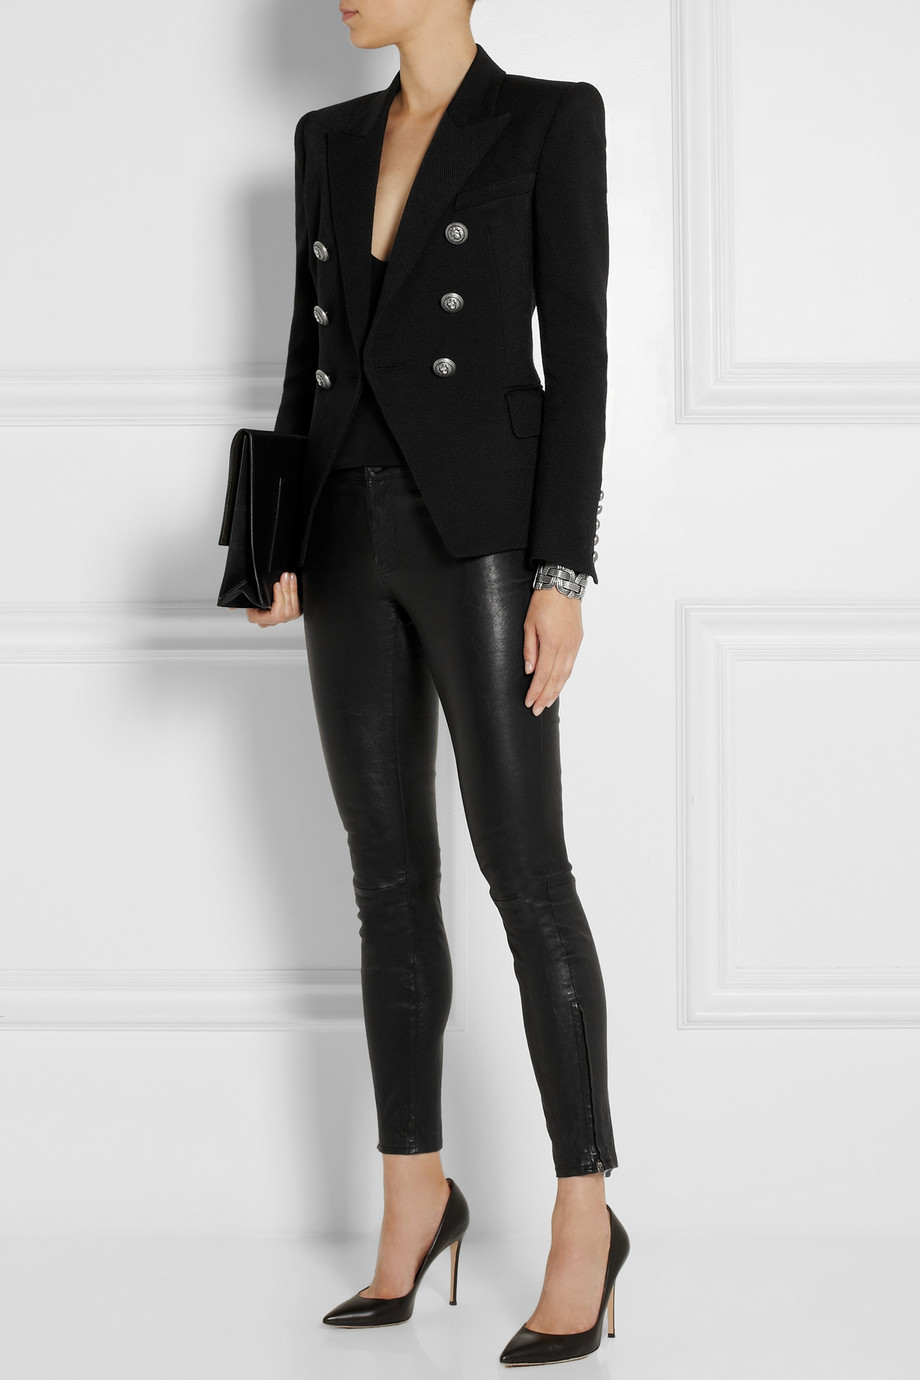 Balmain Jacket Knock Off | Balmain Double Breasted Blazer | Balmain Boots Womens